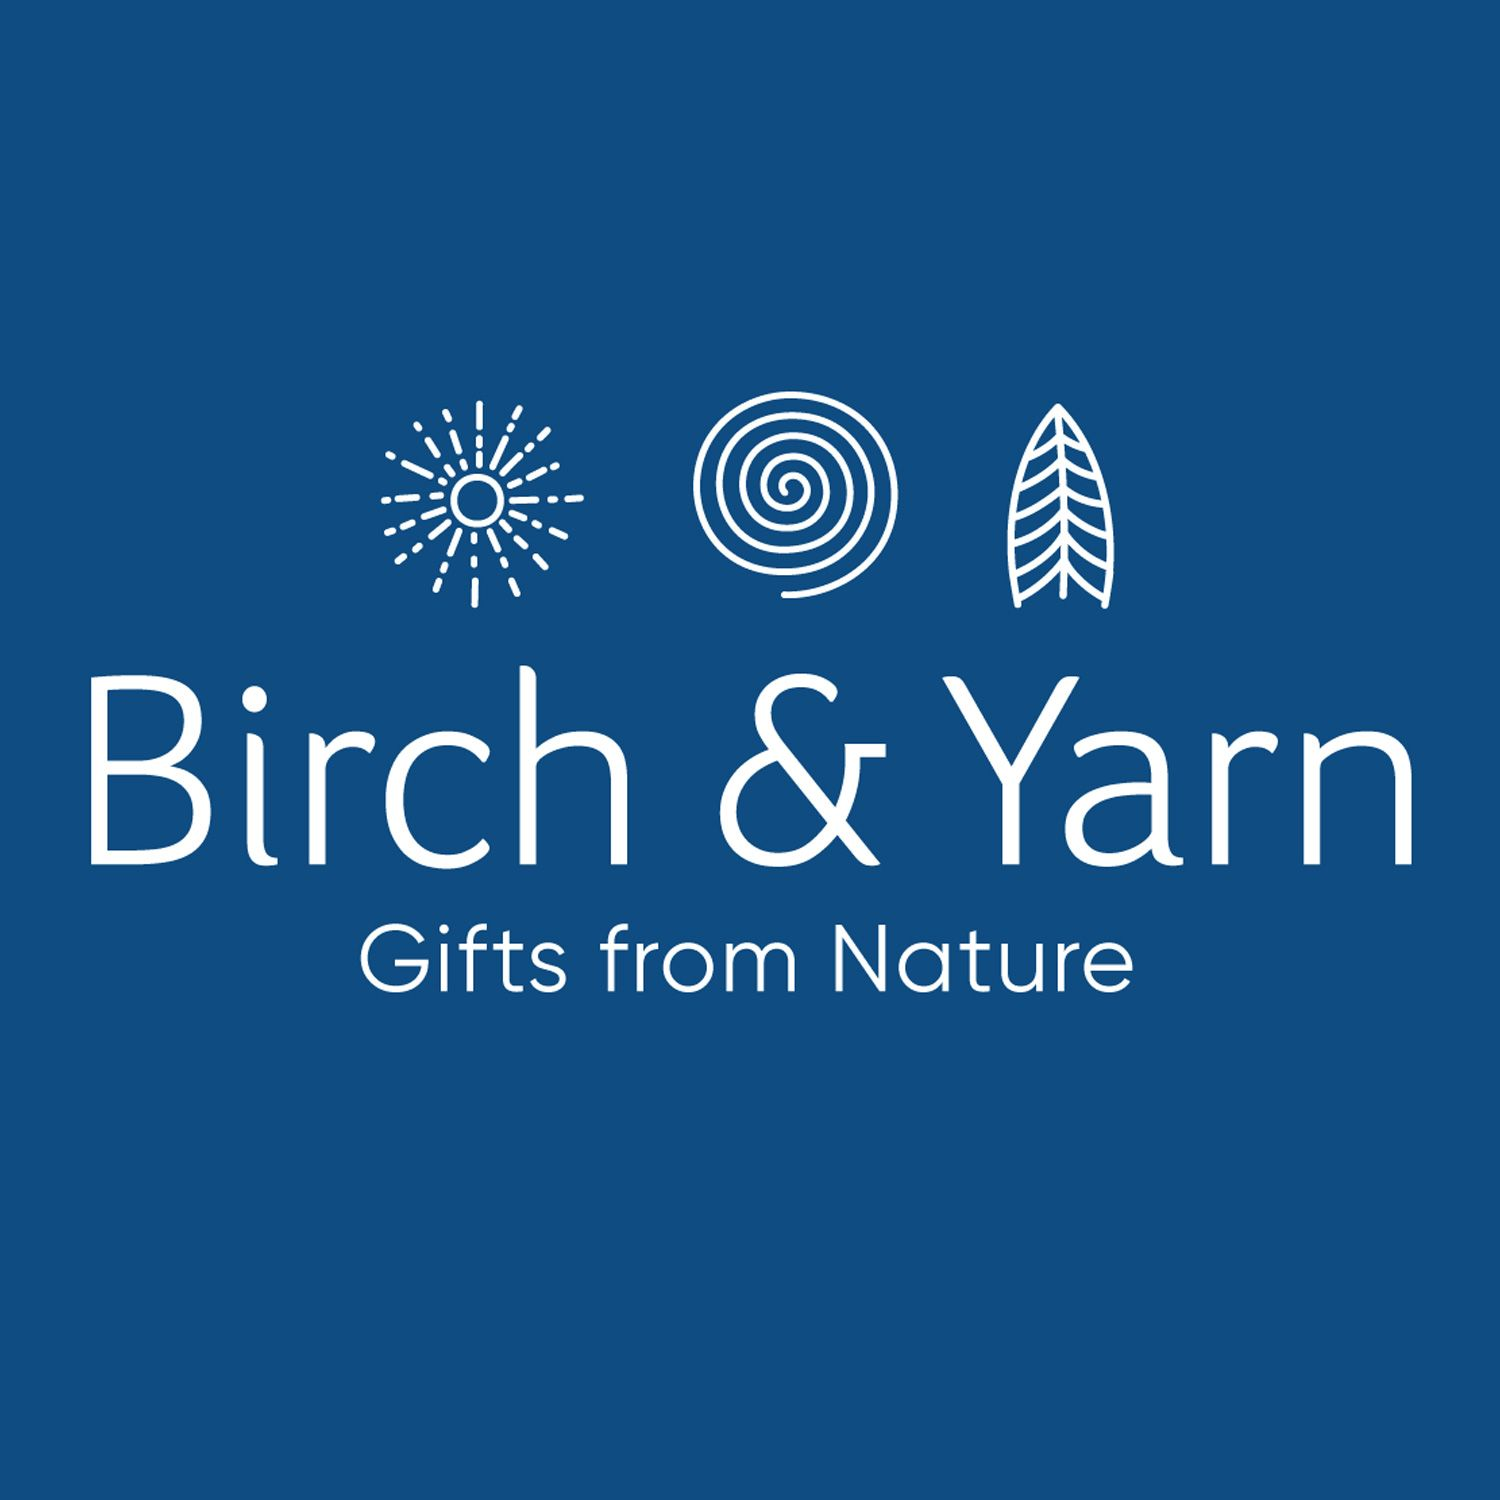 Birch and Yarn (Gifts from Nature) Ltd